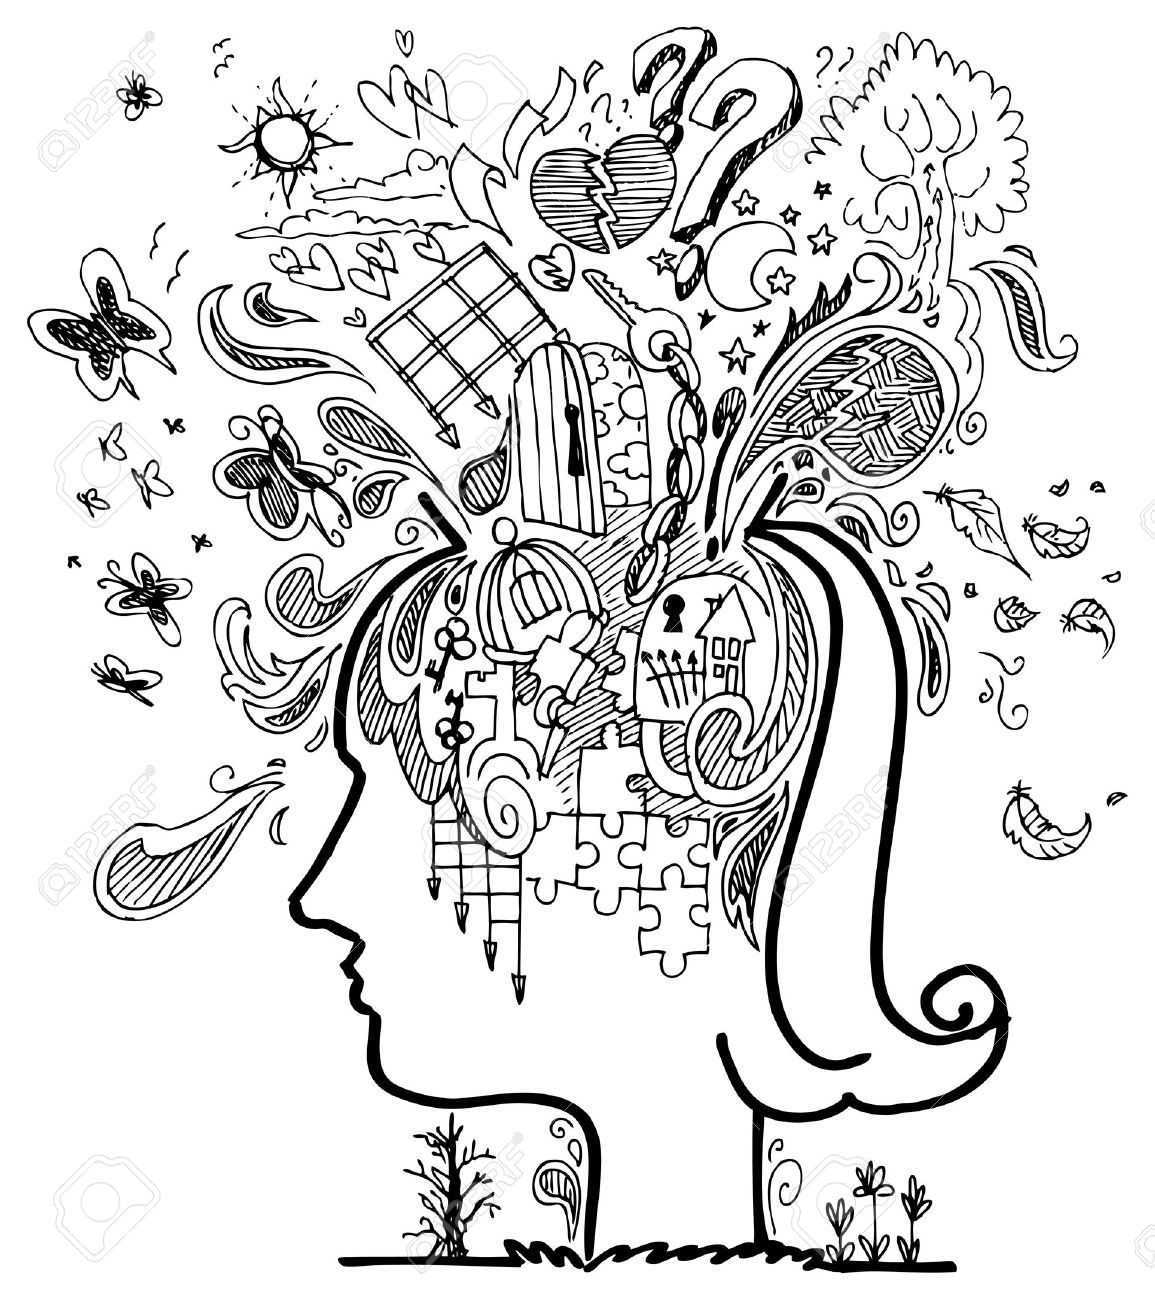 Woman head full of confused thoughts Stock Vector - 17873688